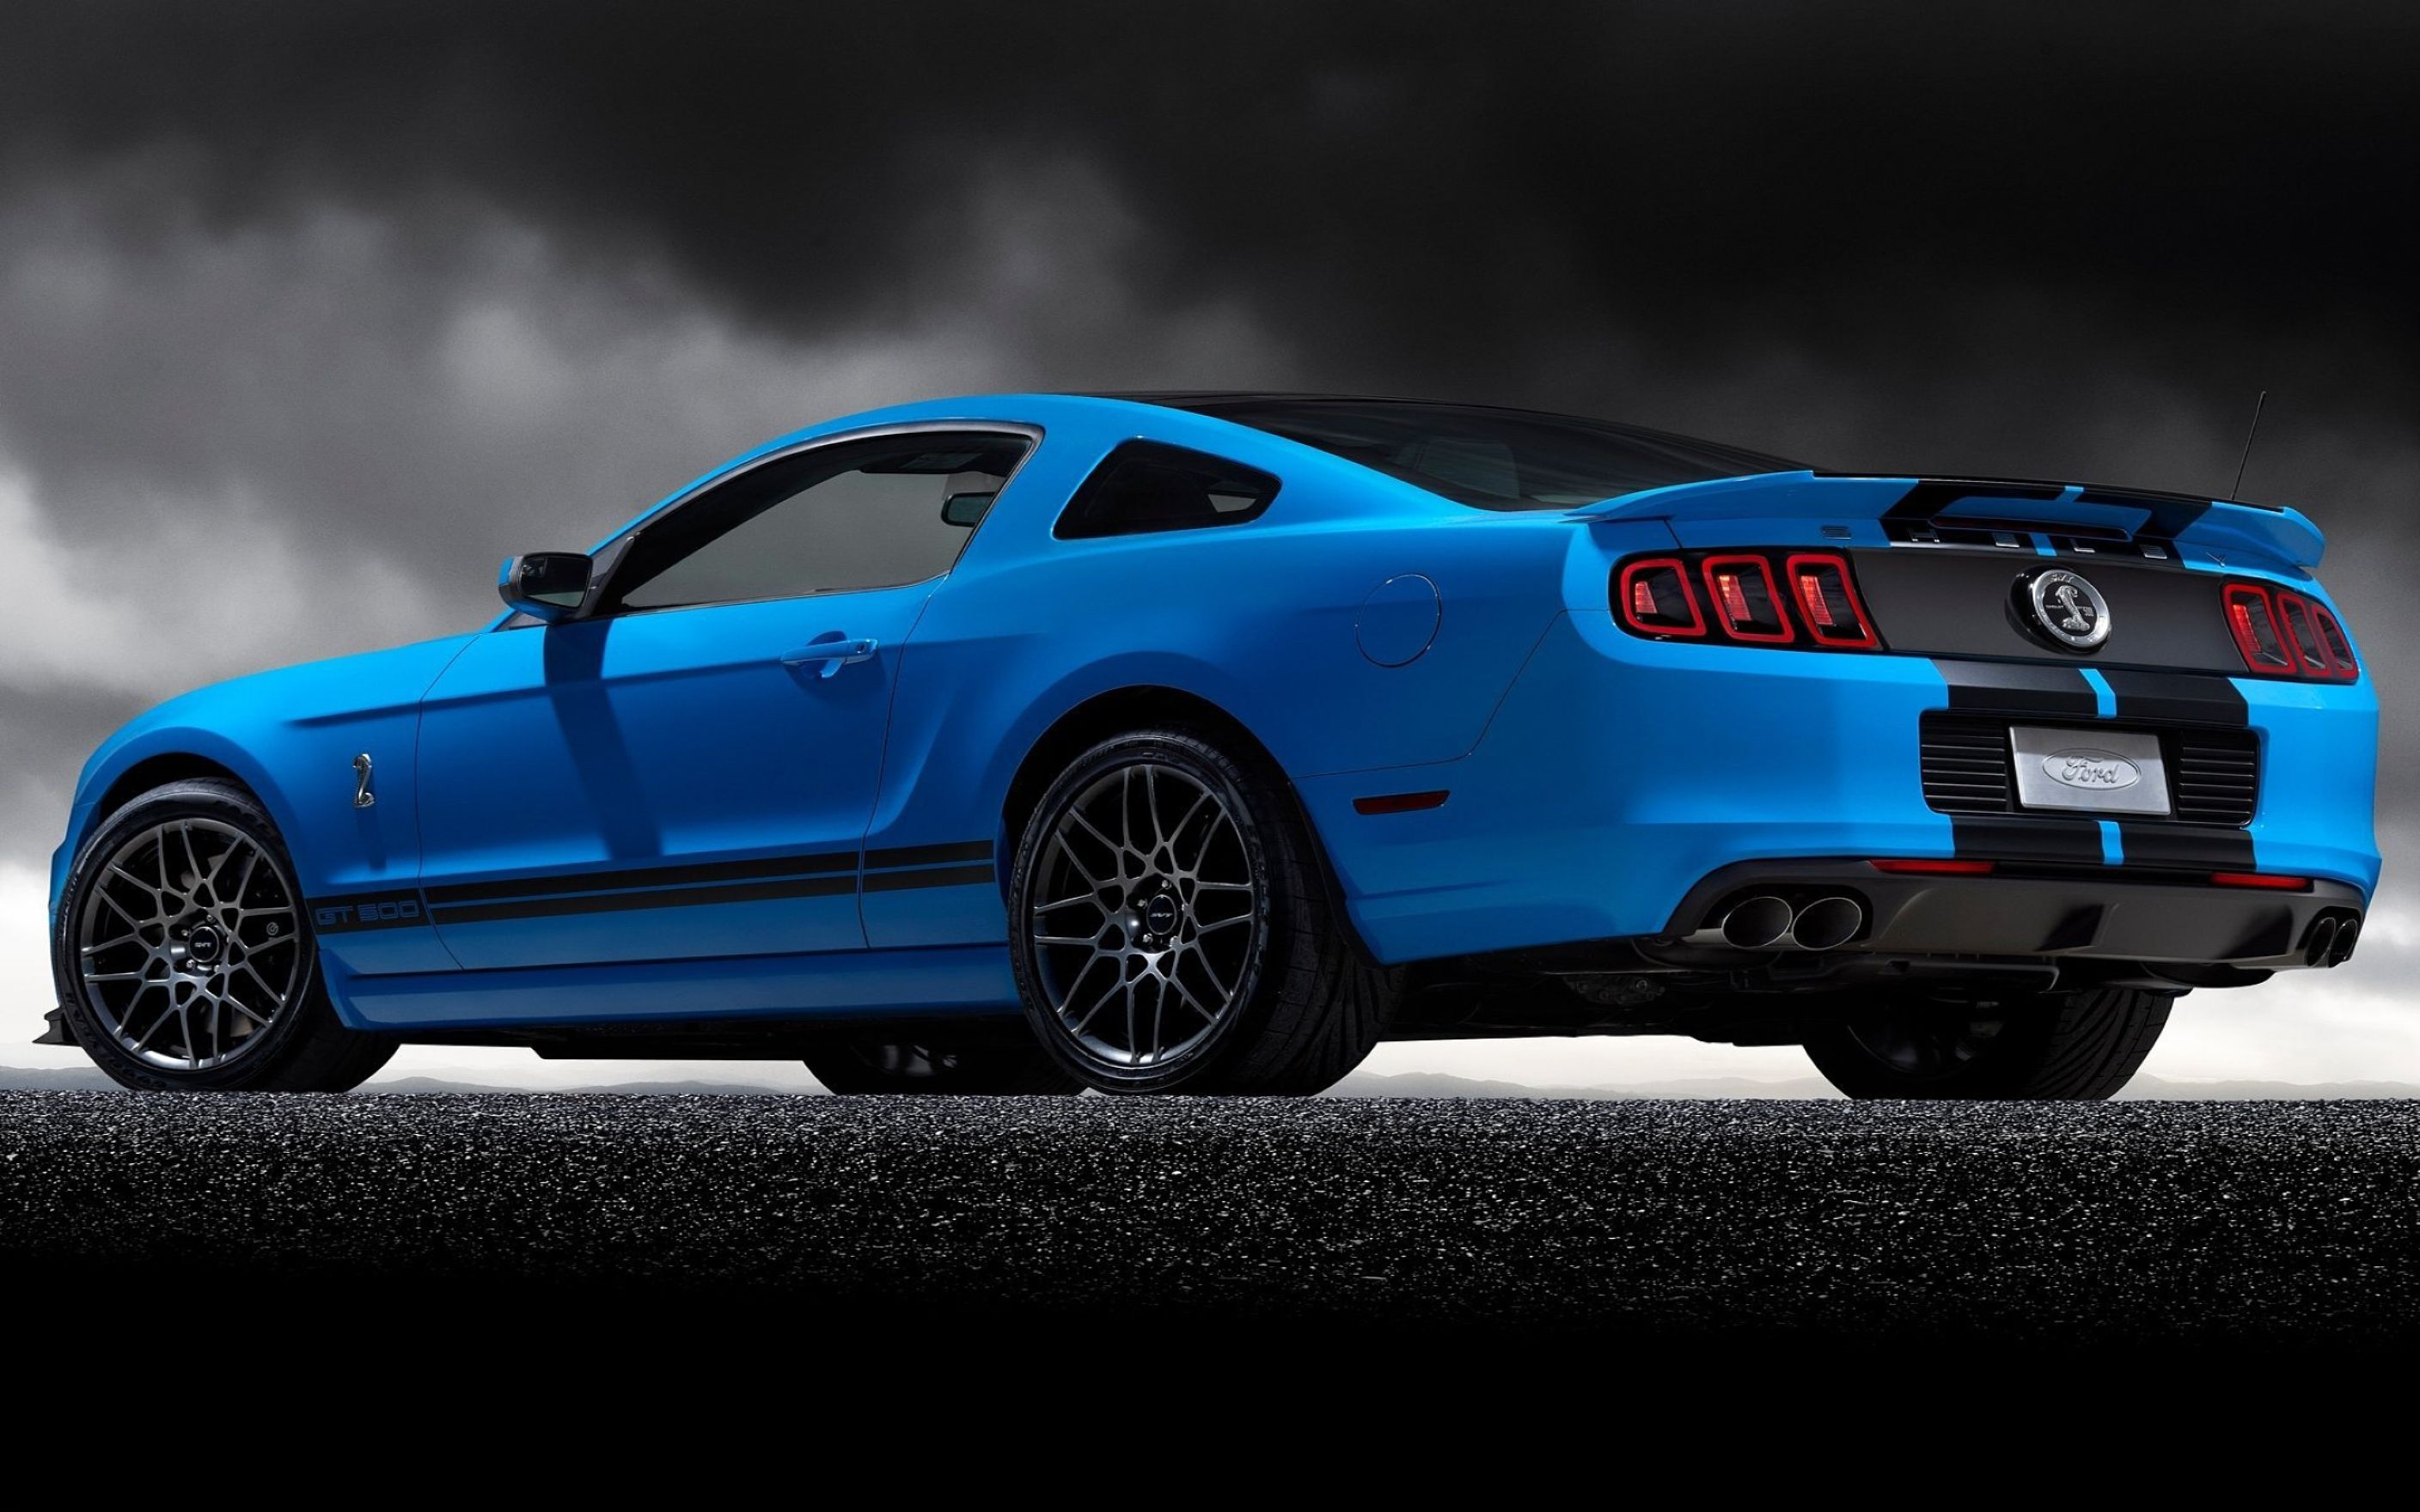 Download free HD Ford Shelby Mustang Gt 500 Wallpaper, image